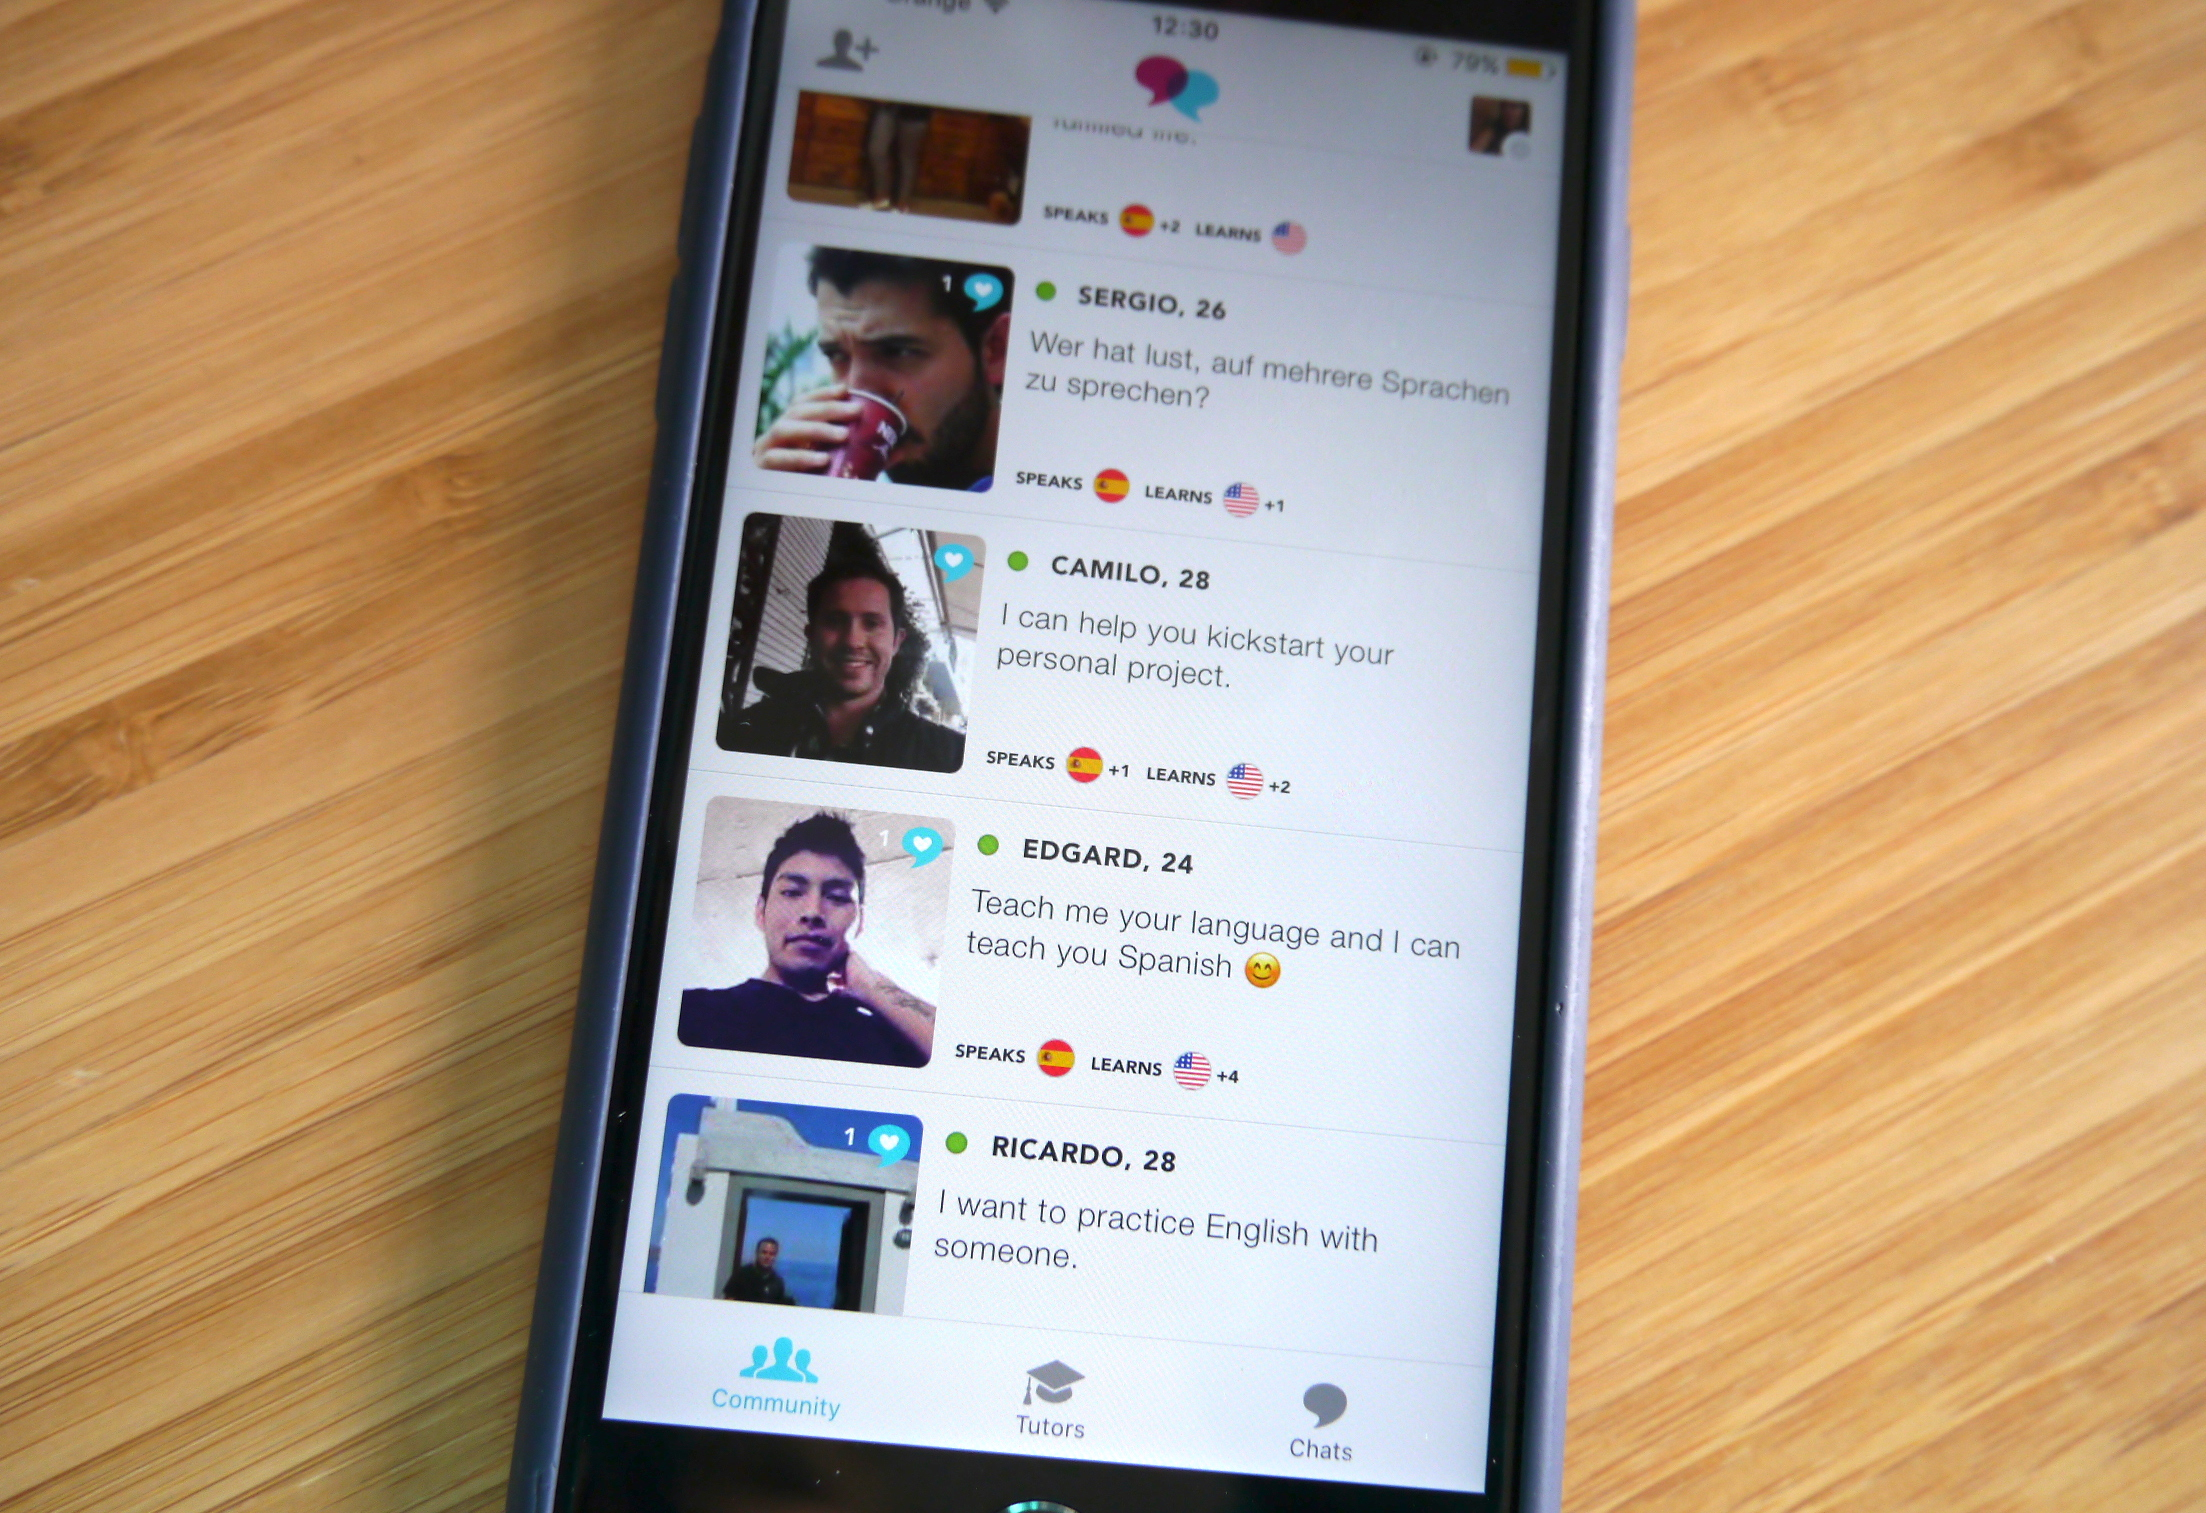 Tandem is a messaging app where language learners chat | TechCrunch